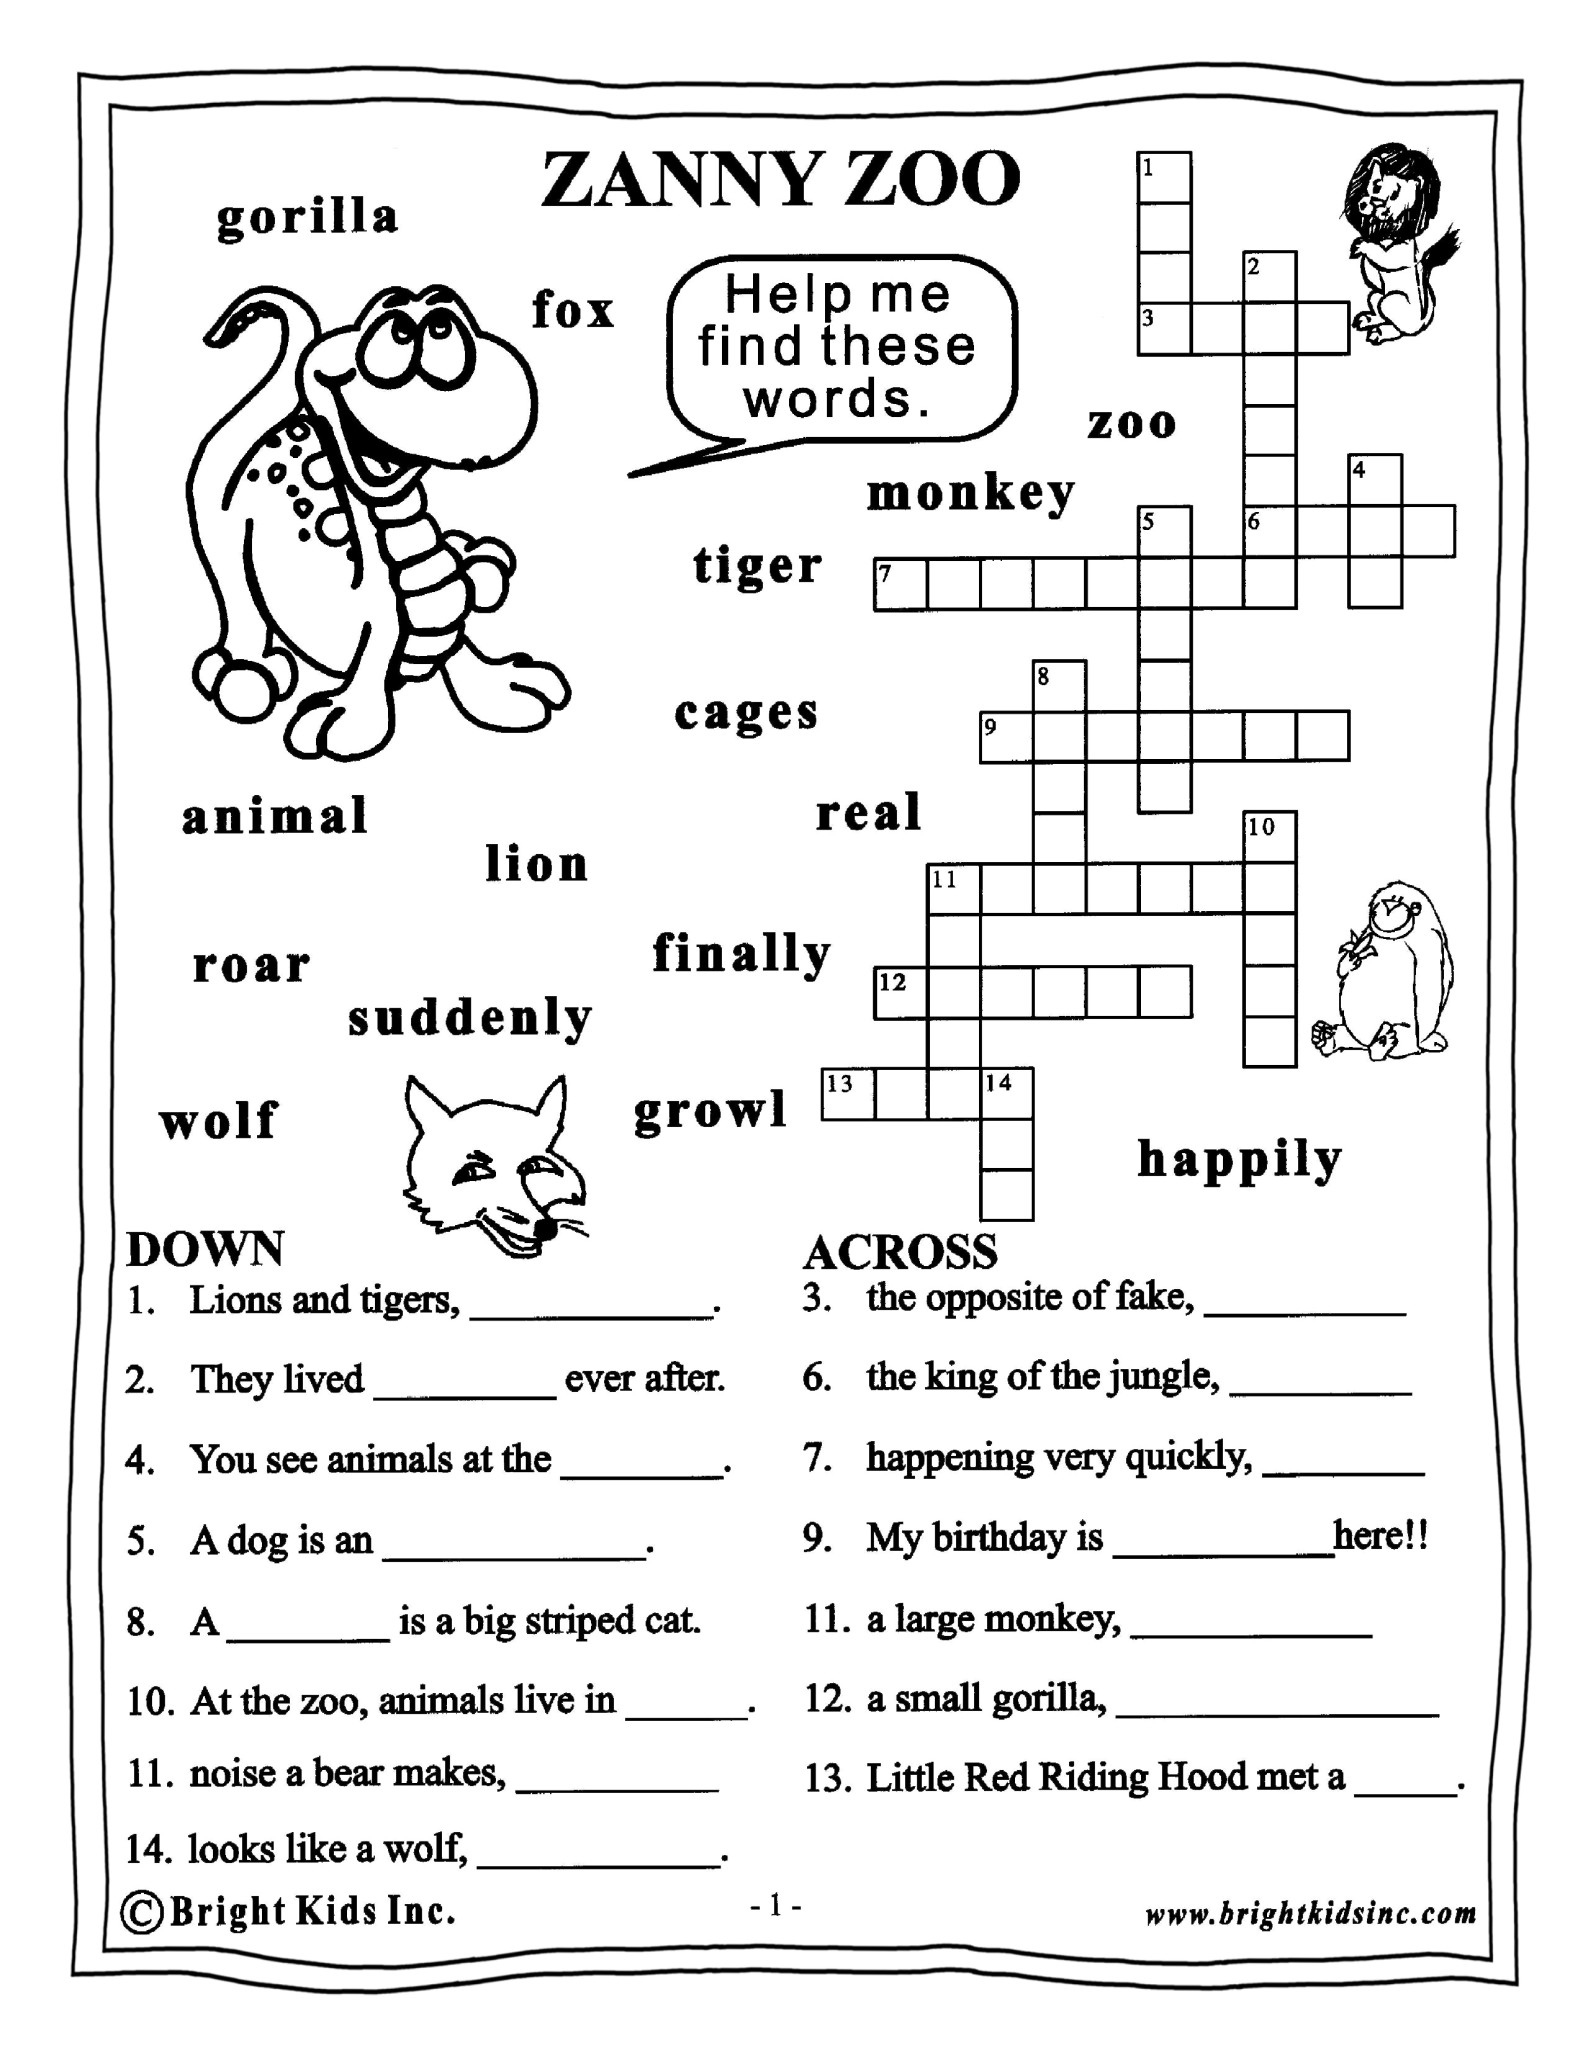 Worksheet Grade Three English grade 3 english word power workout